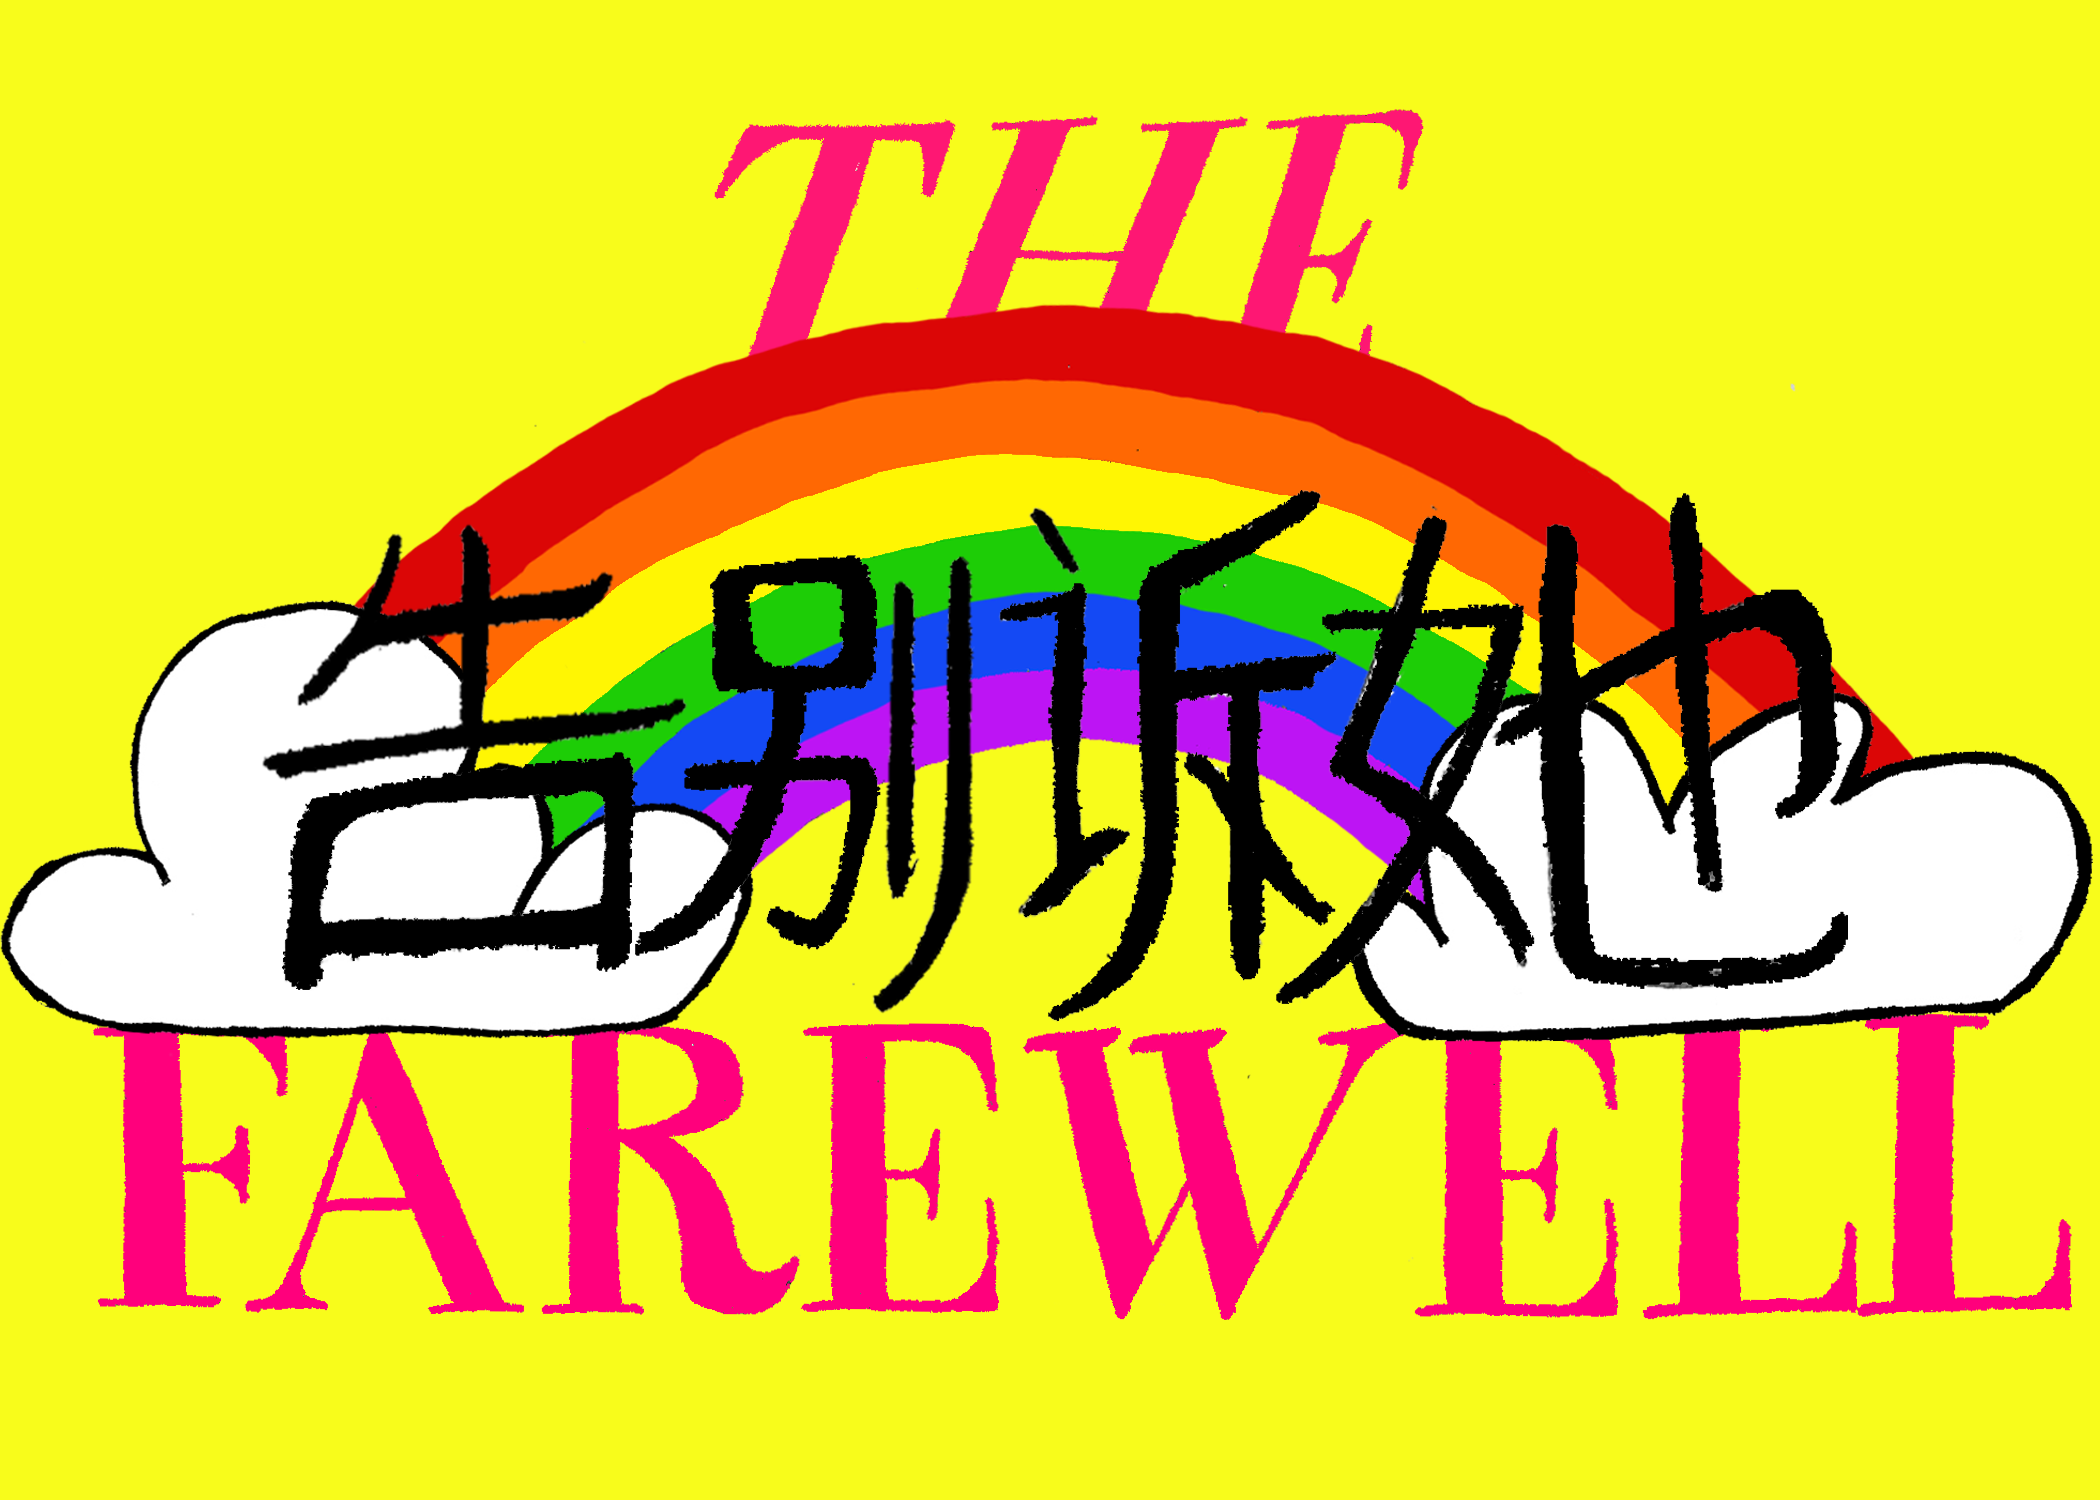 The farwell.jpg.png